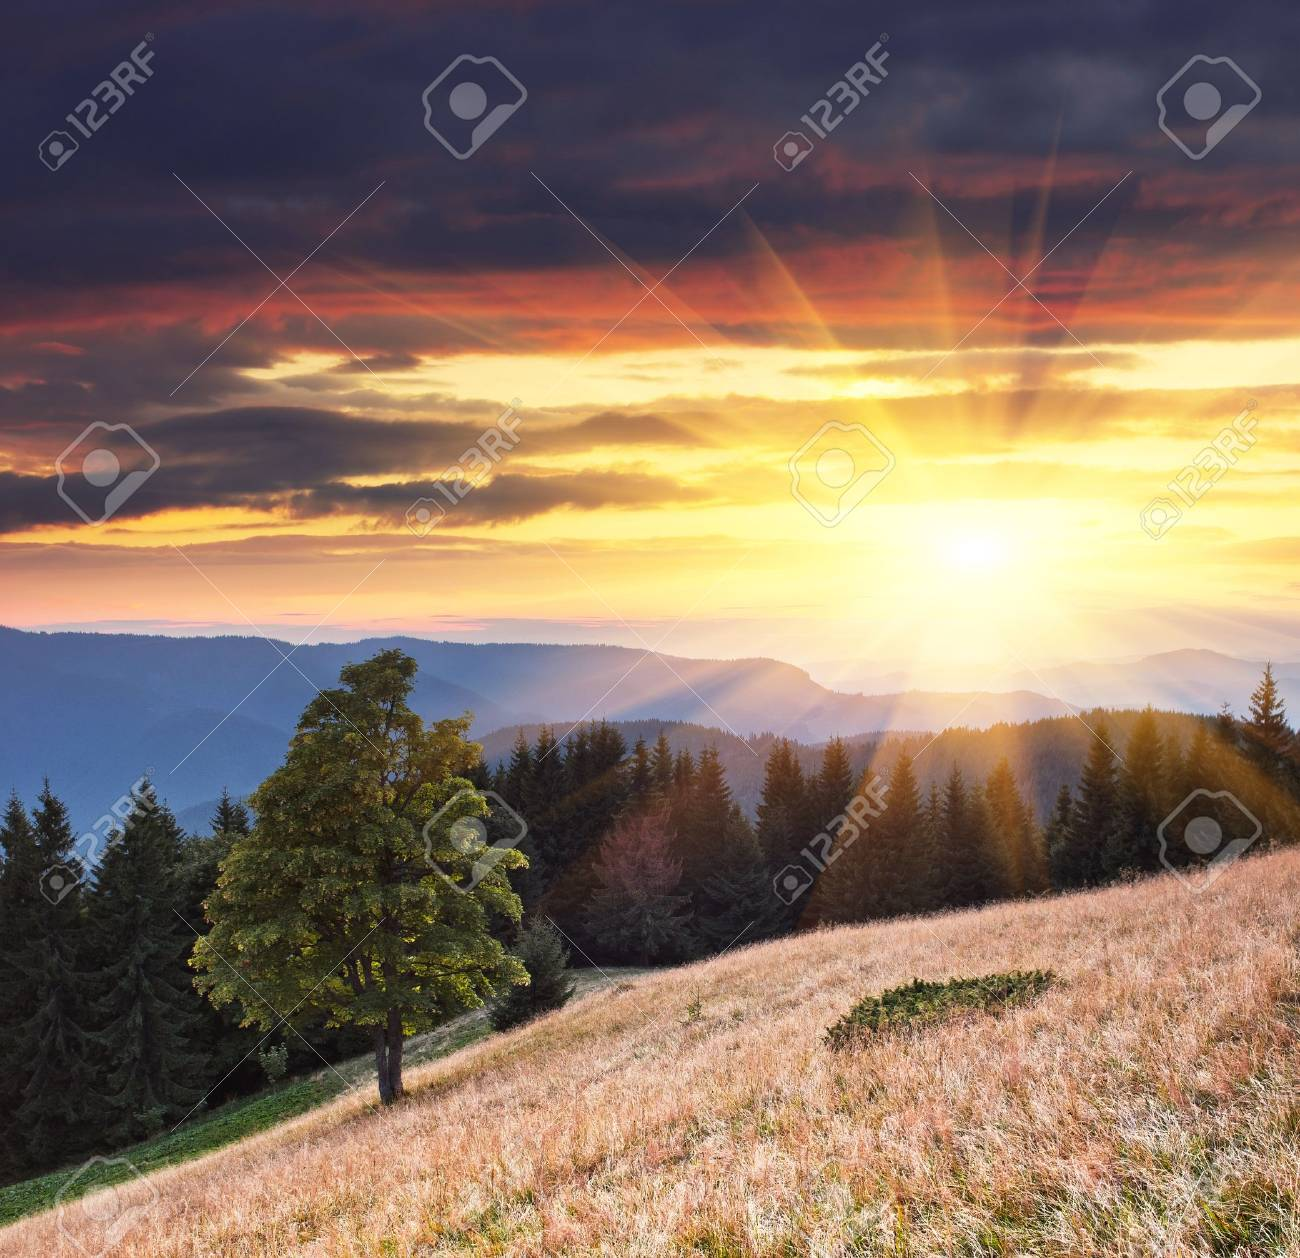 Landscape in the mountains with a sunset. Ukraine, the Carpathian mountains Stock Photo - 12209523